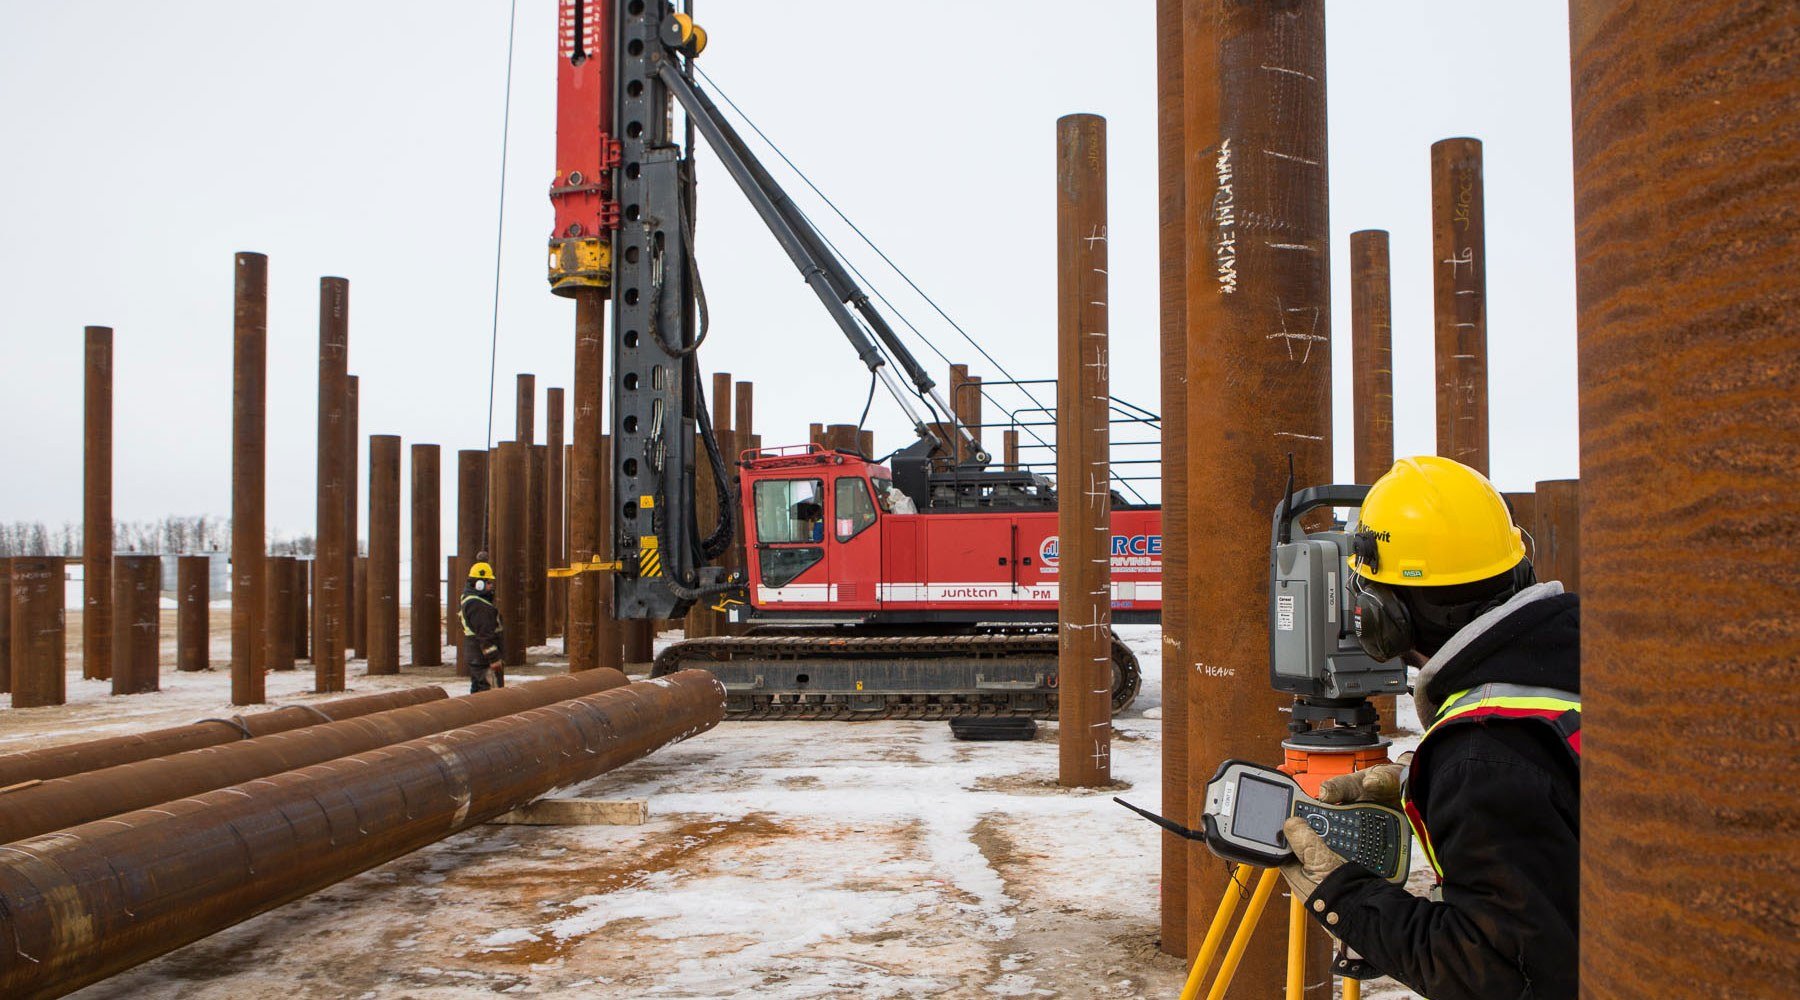 Piledriving being carried out